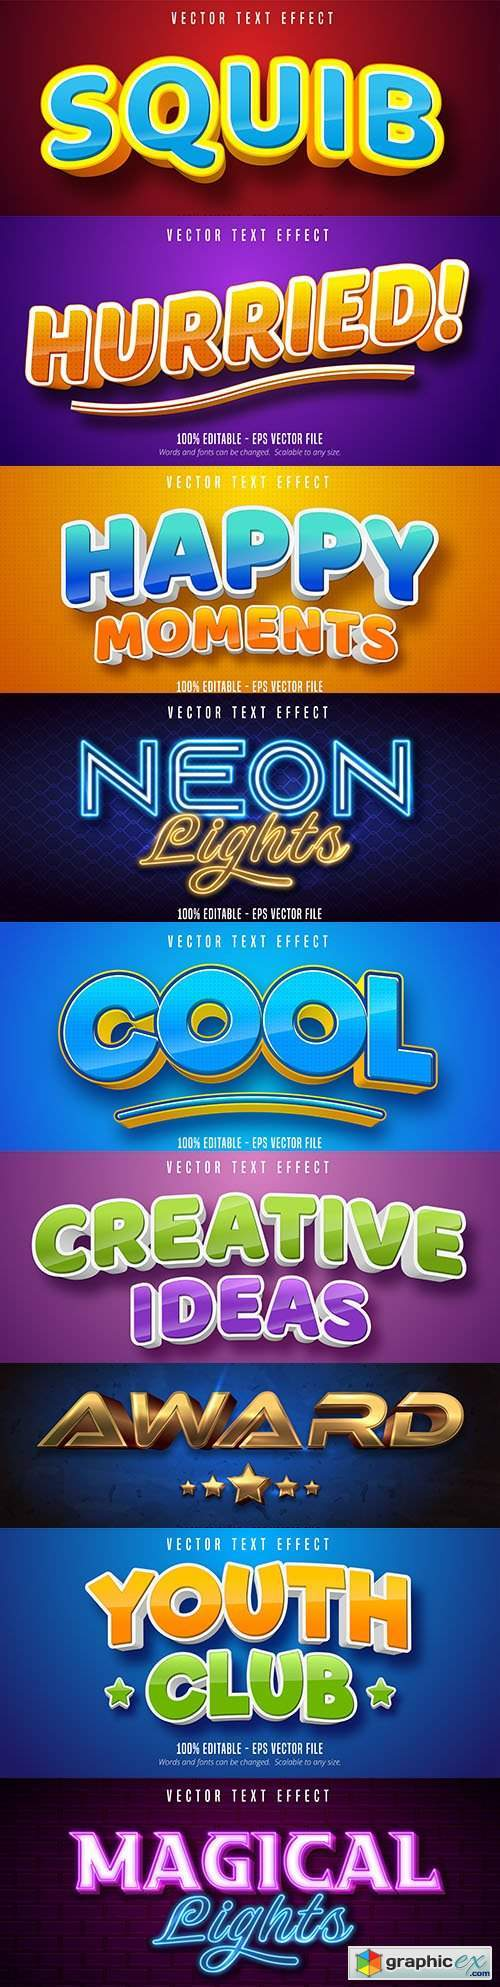 Editable font effect text collection illustration design 106